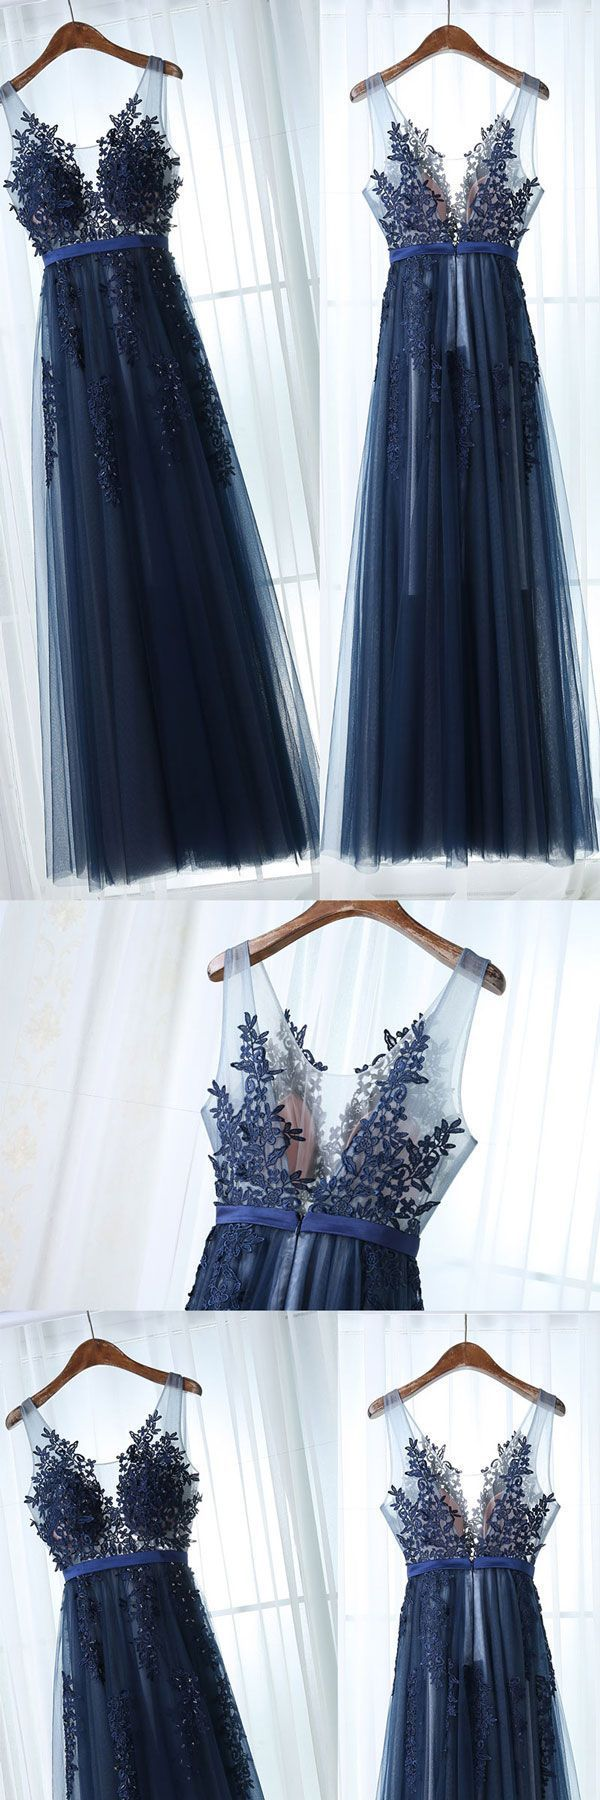 Dark blue wedding dress  Dark blue tulle lace long prom dress dark blue bridesmaid dress